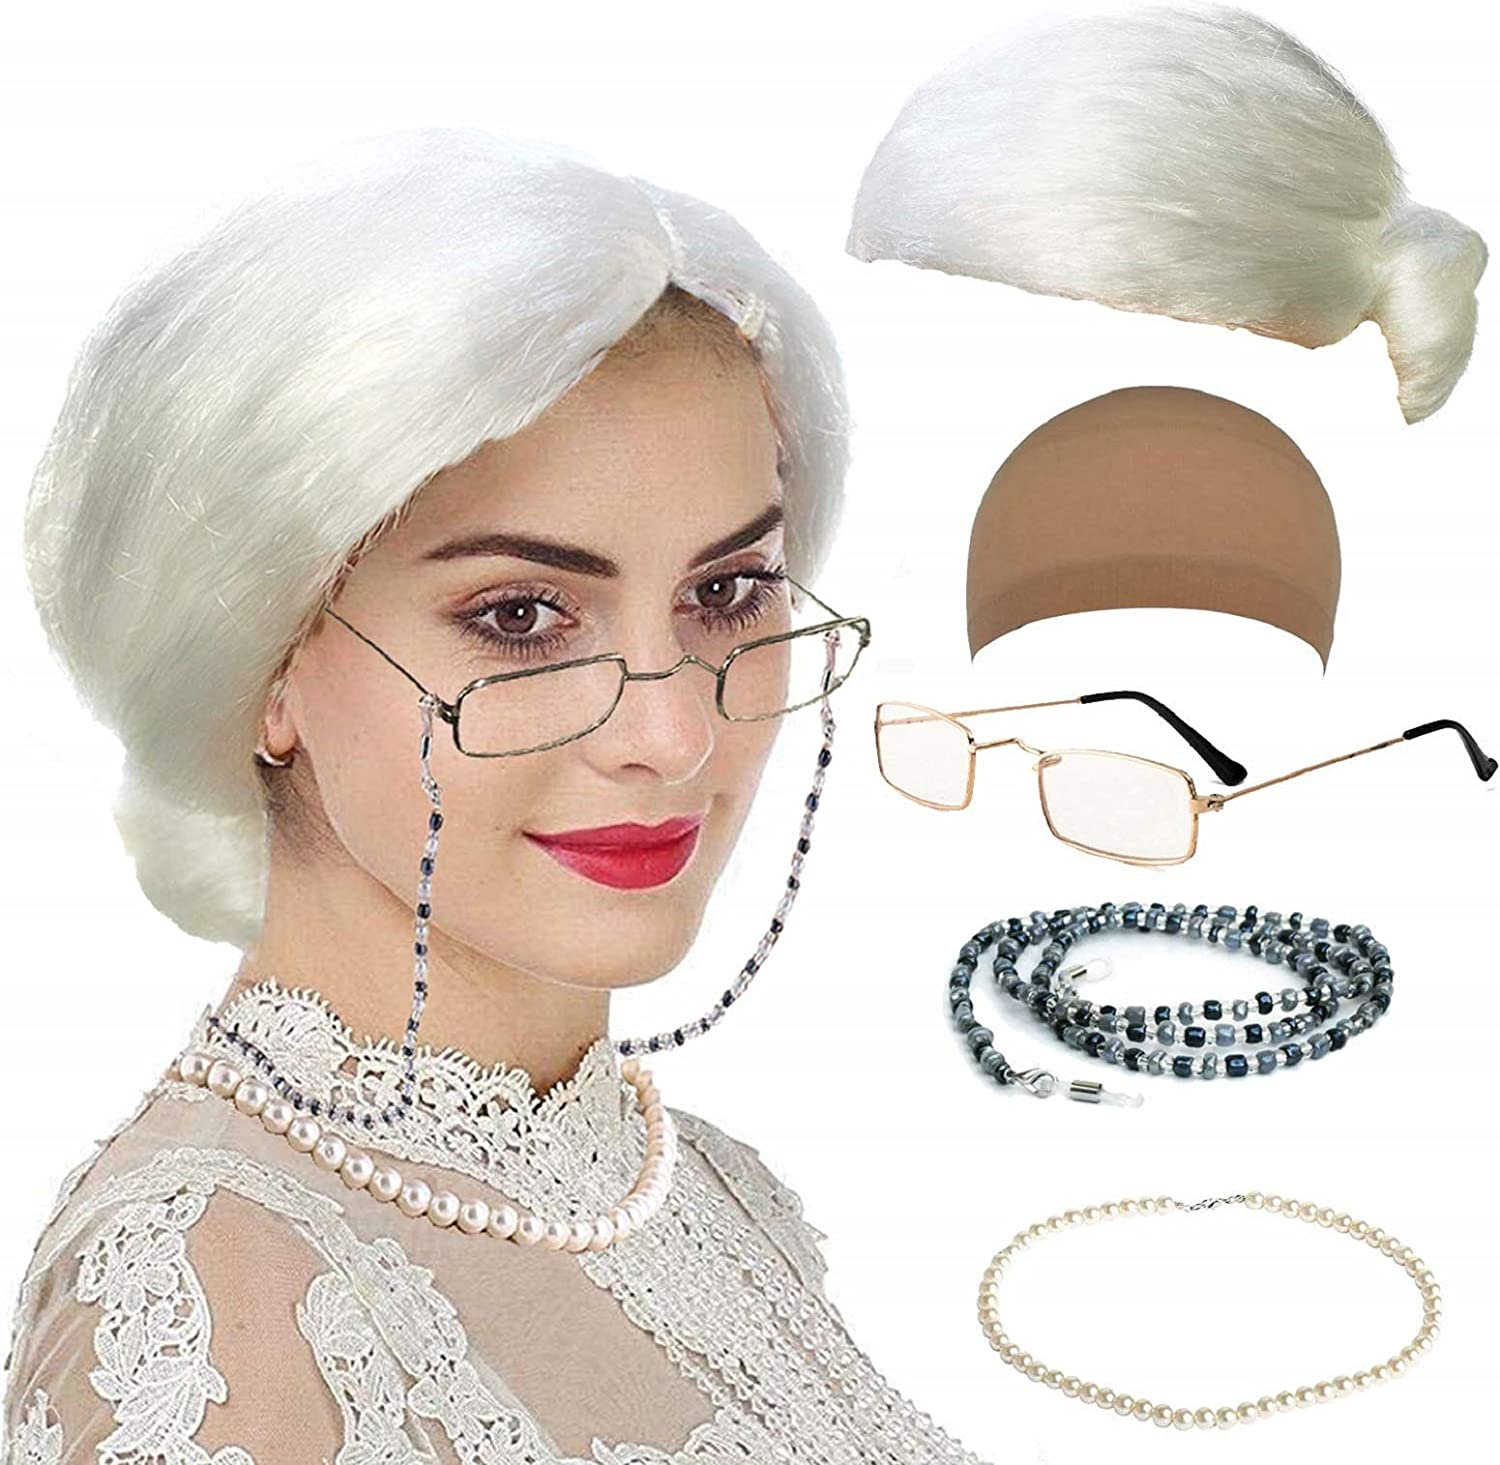 Old Lady Cosplay Set - Wig Cap, Granny Glasses, Eyeglass Chains, Pearl Beads